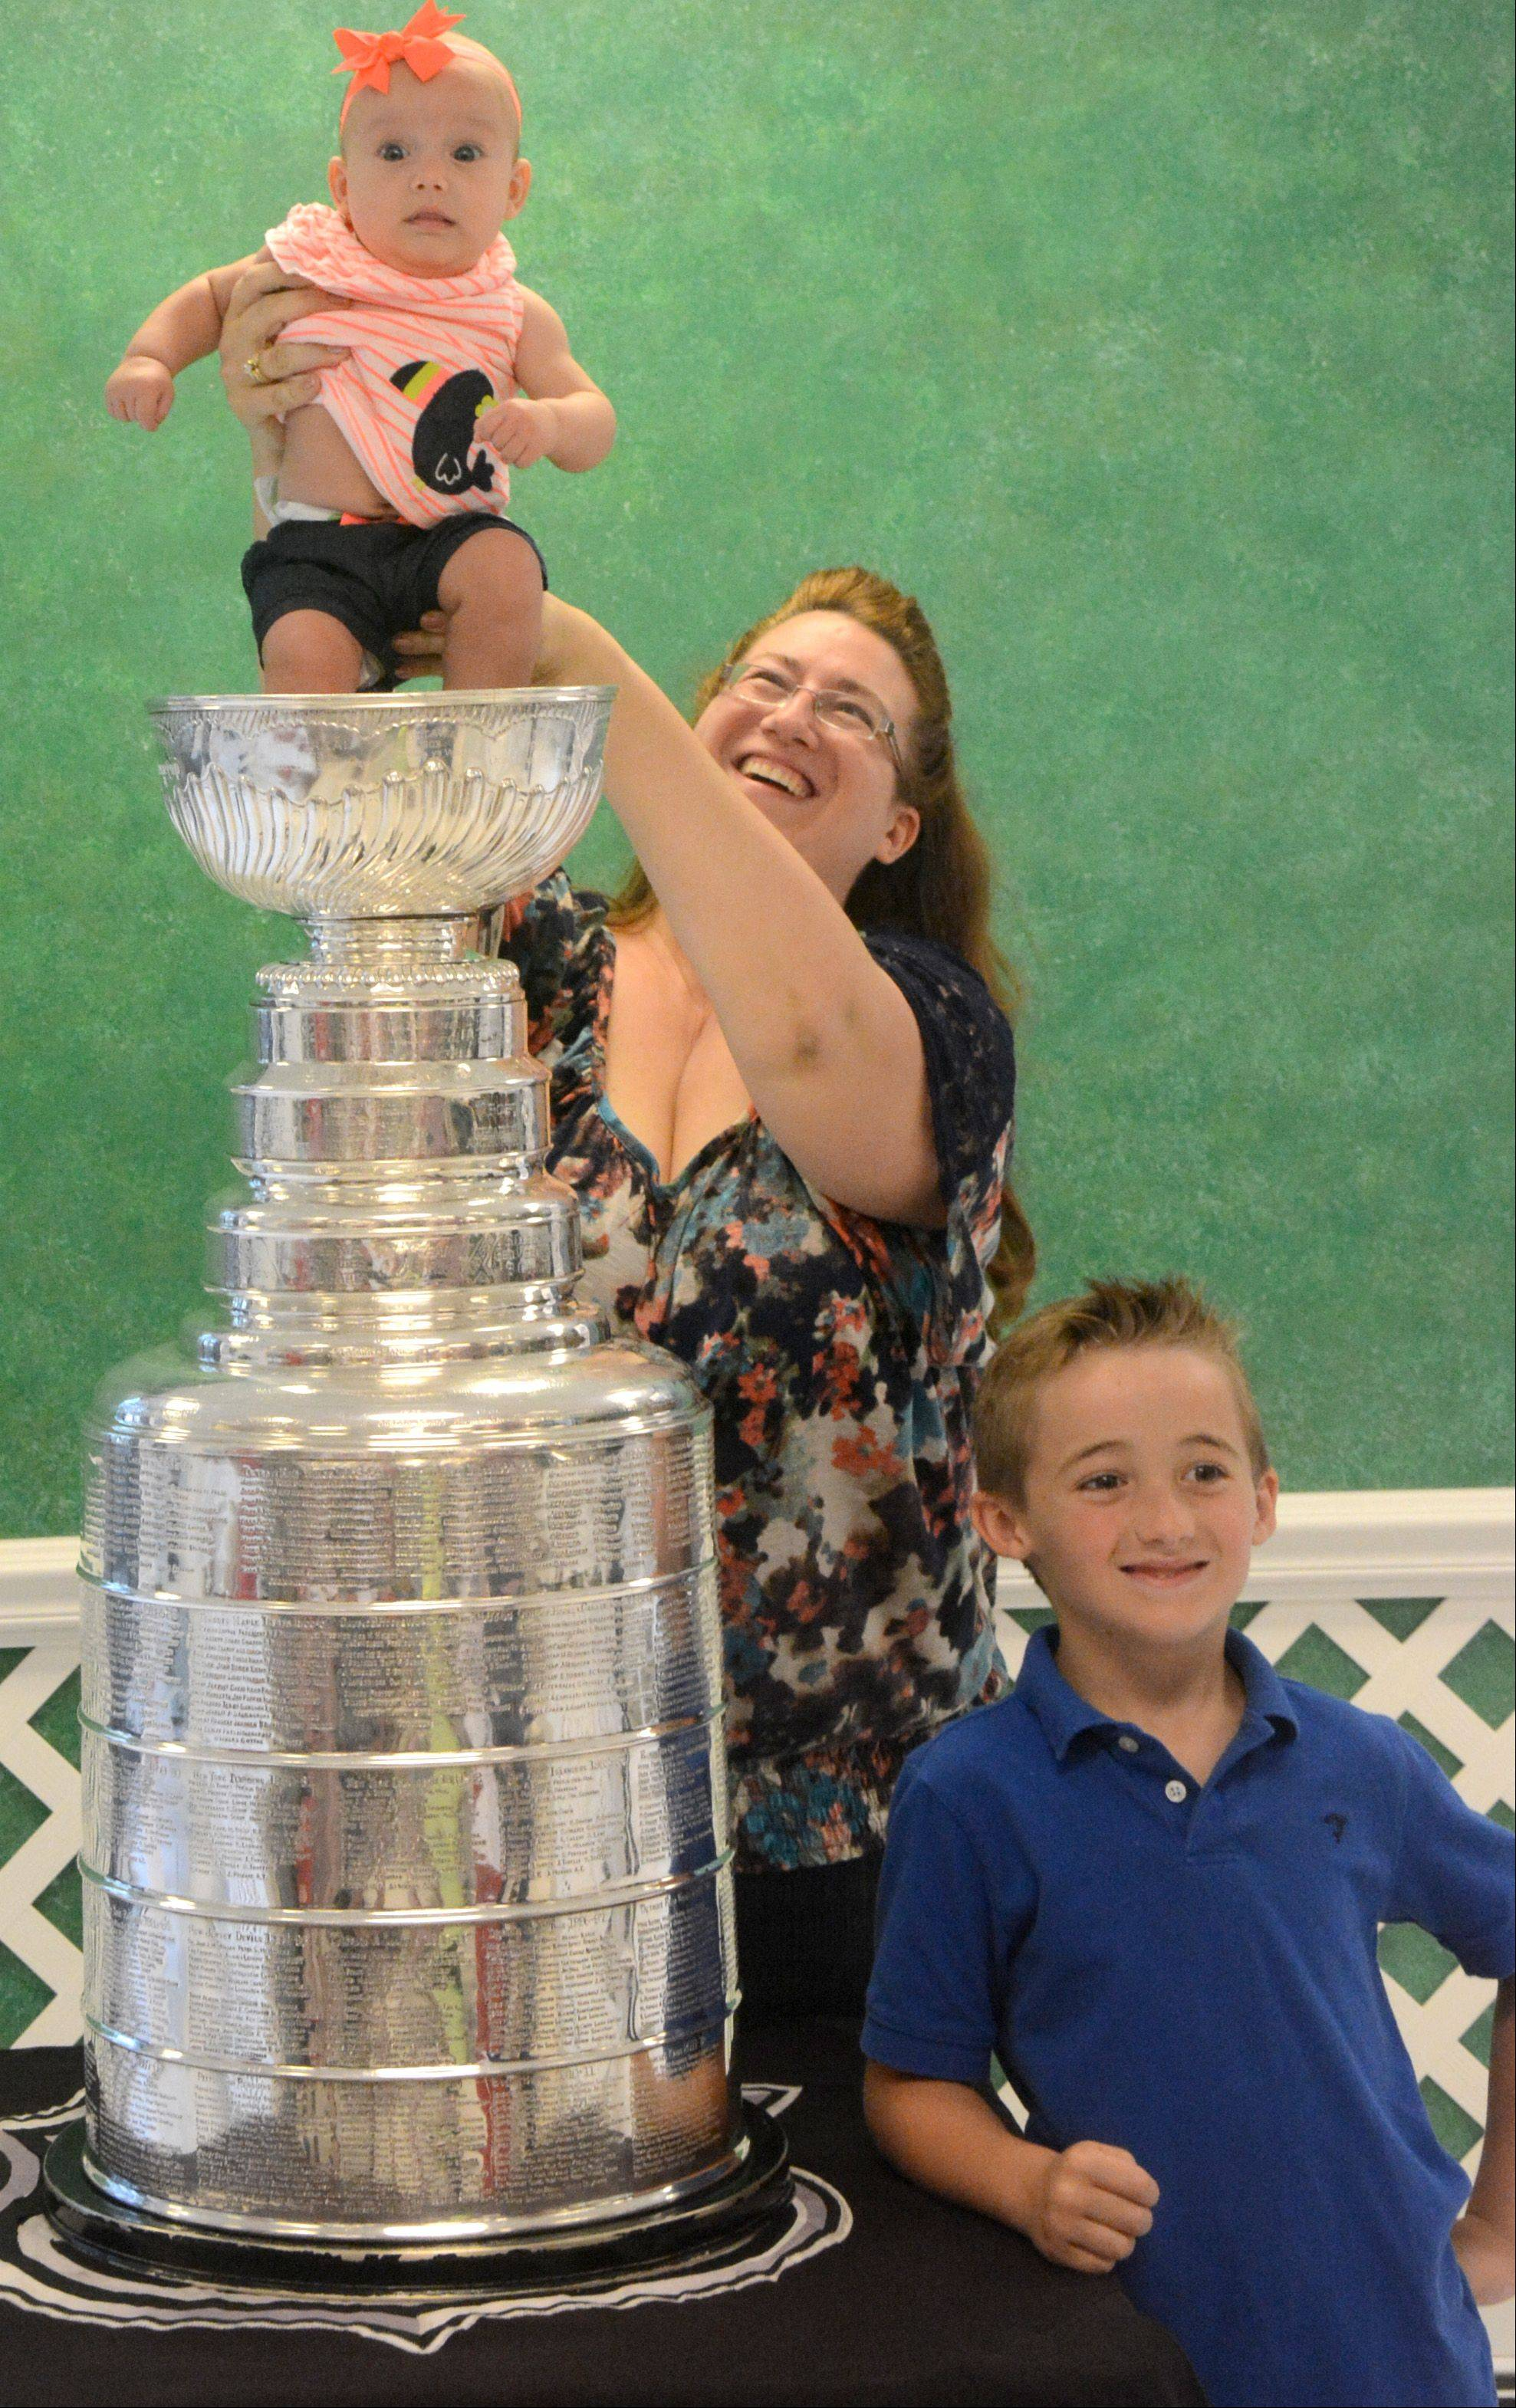 Candace Lewnard, of Mount Prospect, holds 4-month-old daughter Sofia in the Stanley Cup as brother Michael, 7, poses for a photo at the Daily Herald office Friday in Arlington Heights.